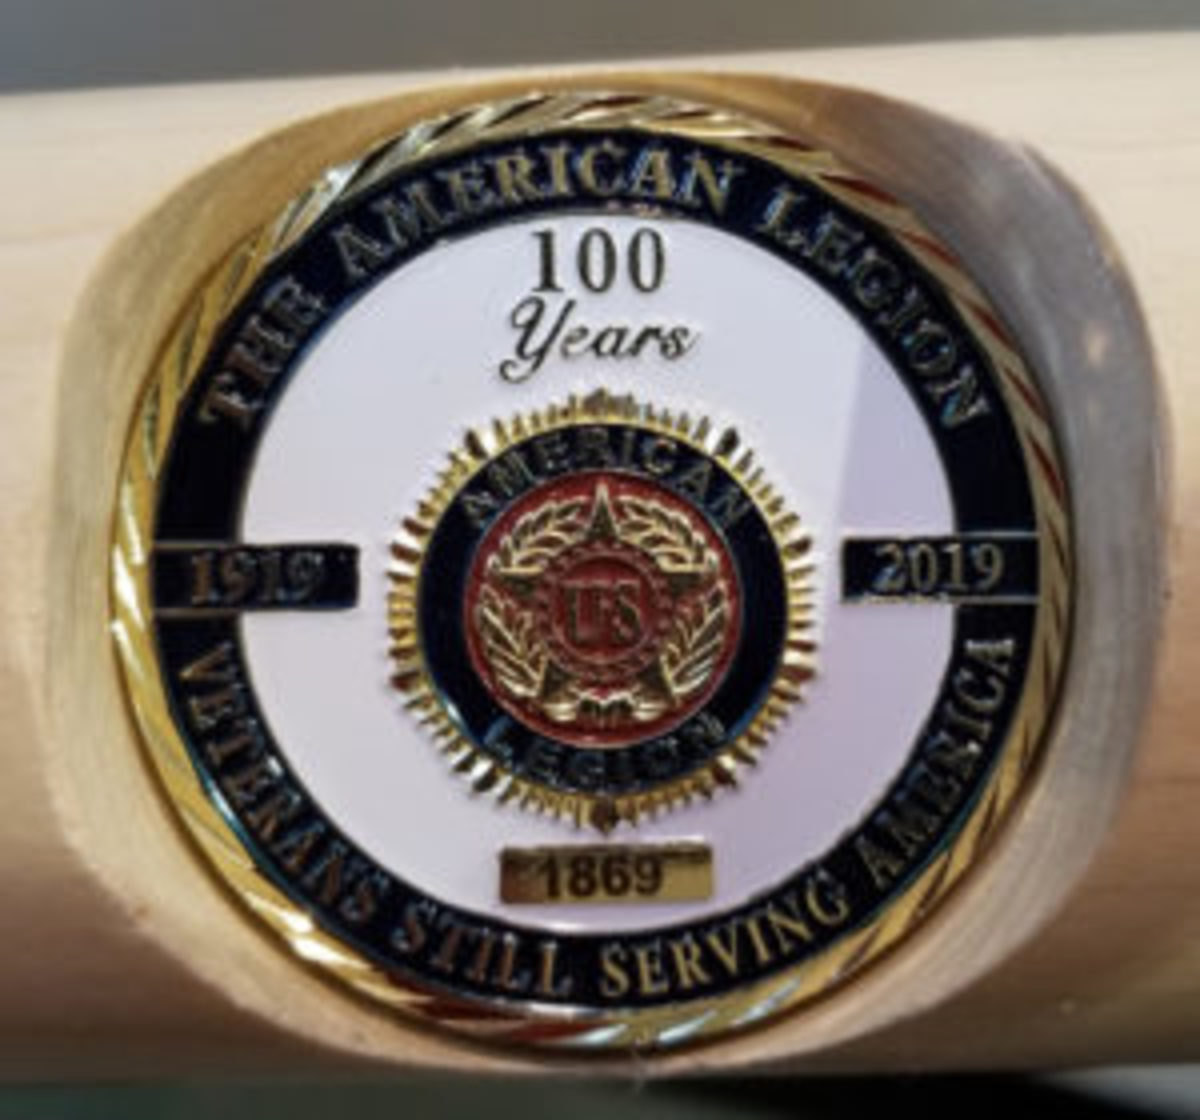 A close-up of the portion of the bat recognizing the 100th anniversary of the American Legion.